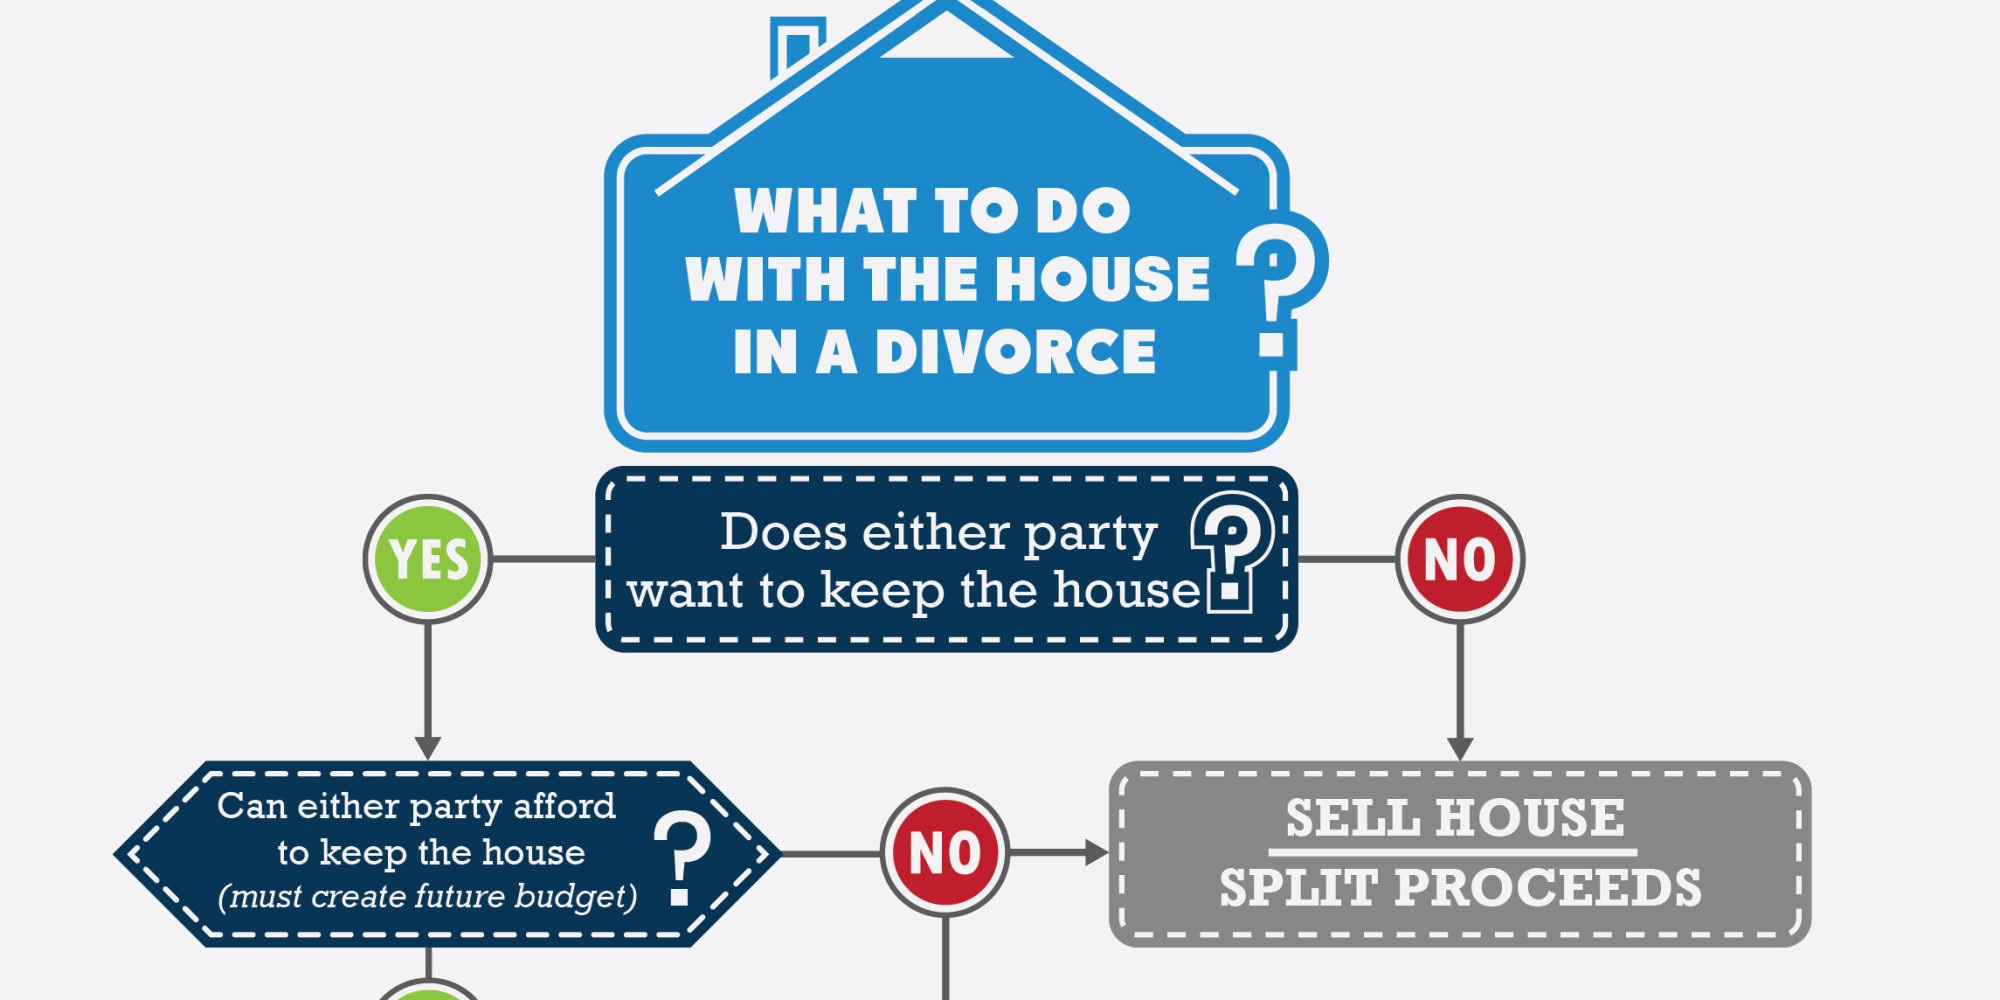 divorced sell house